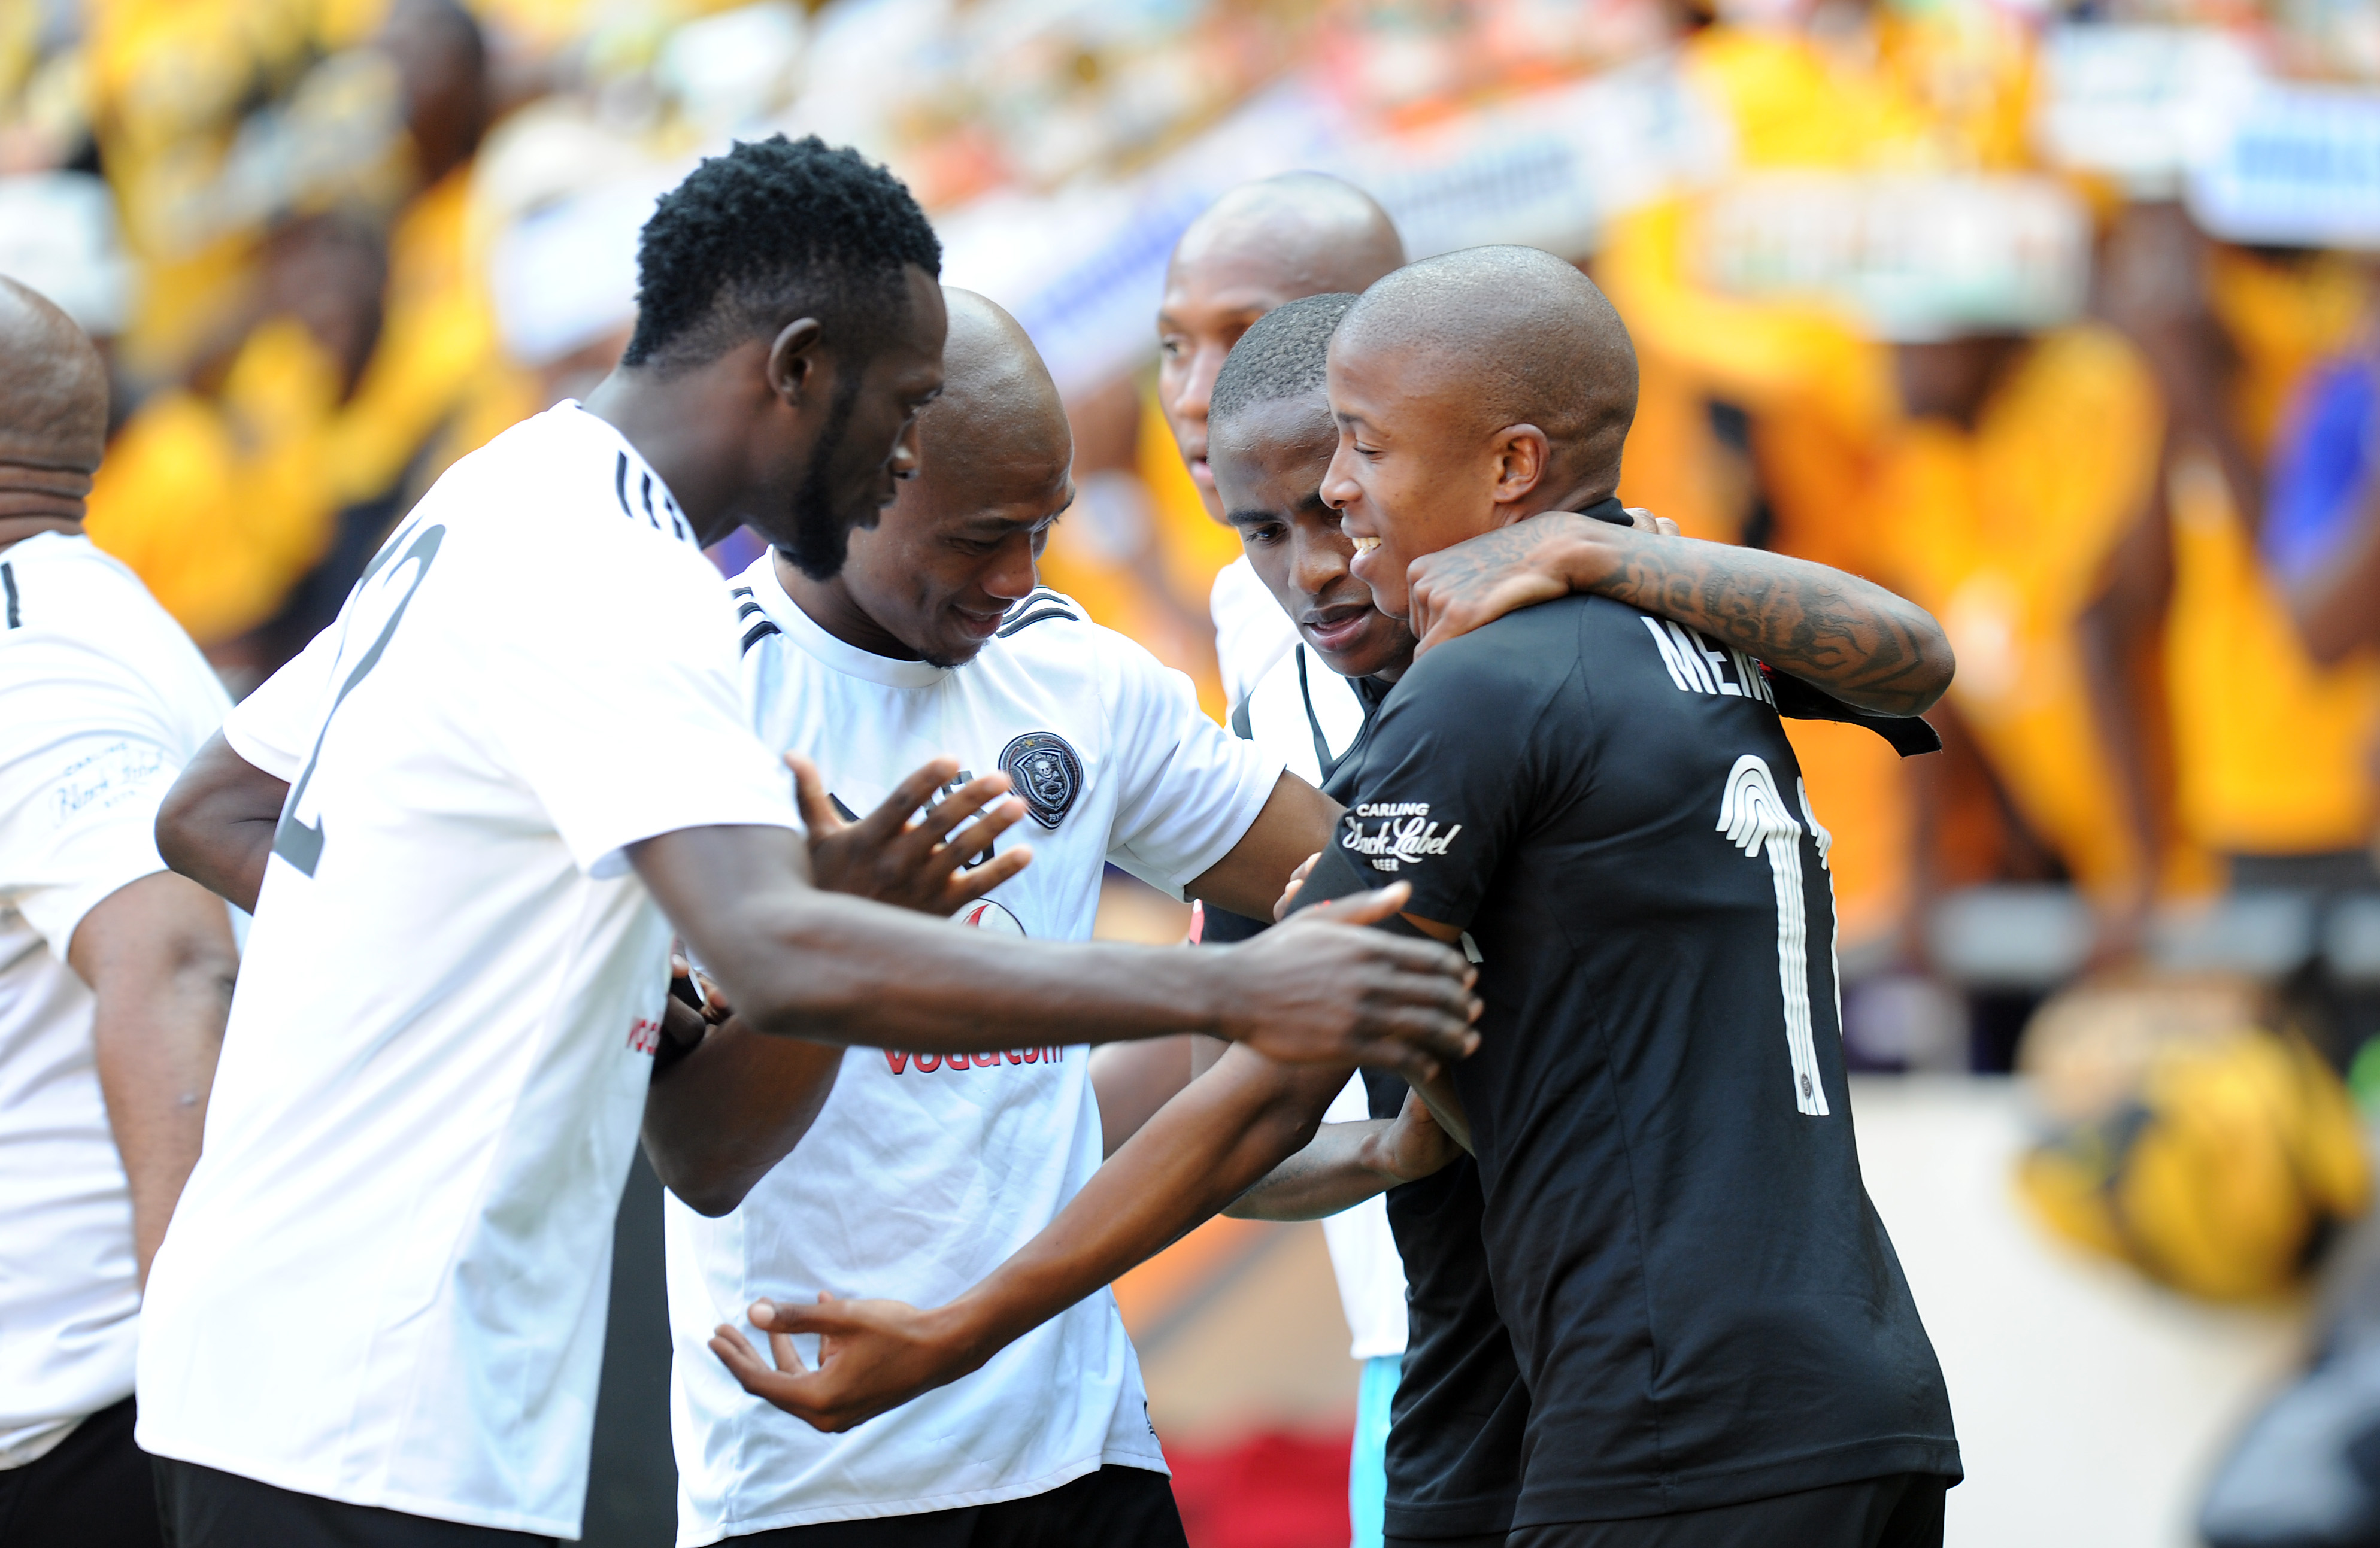 JOHANNESBURG, SOUTH AFRICA - MARCH 03: Luvuyo Memela celebrating his goal with team mates of Orlando Pirates during the Absa Premiership match between Orlando Pirates and Kaizer Chiefs at FNB Stadium on March 03, 2018 in Johannesburg, South Africa. (Photo by Gallo Images)